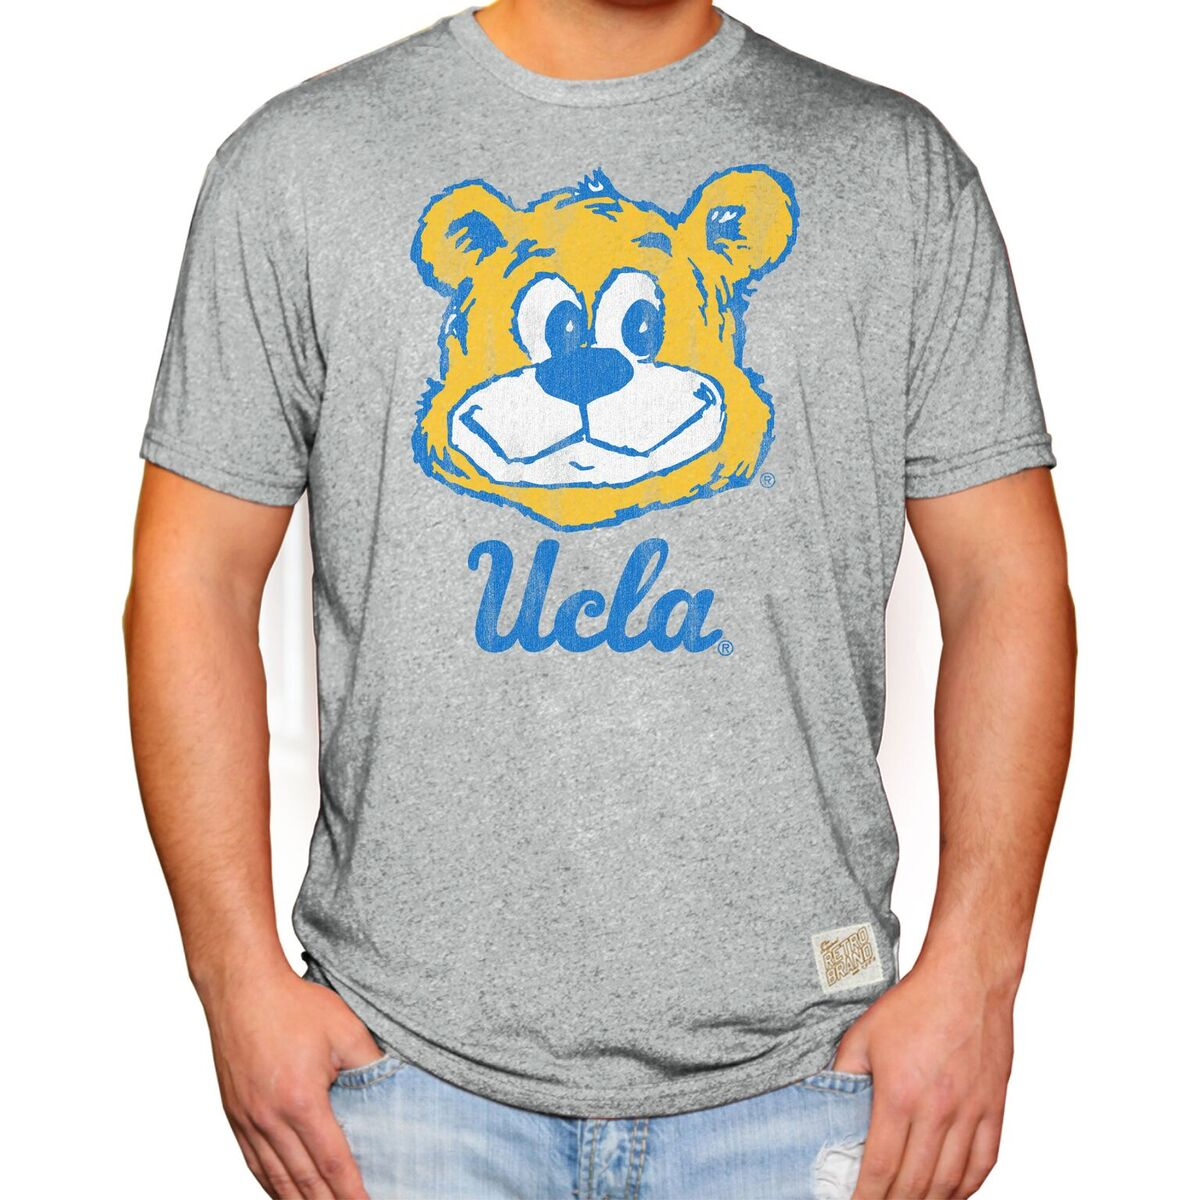 UCLA Bruins Men's Short Sleeve Mock Twist Tee